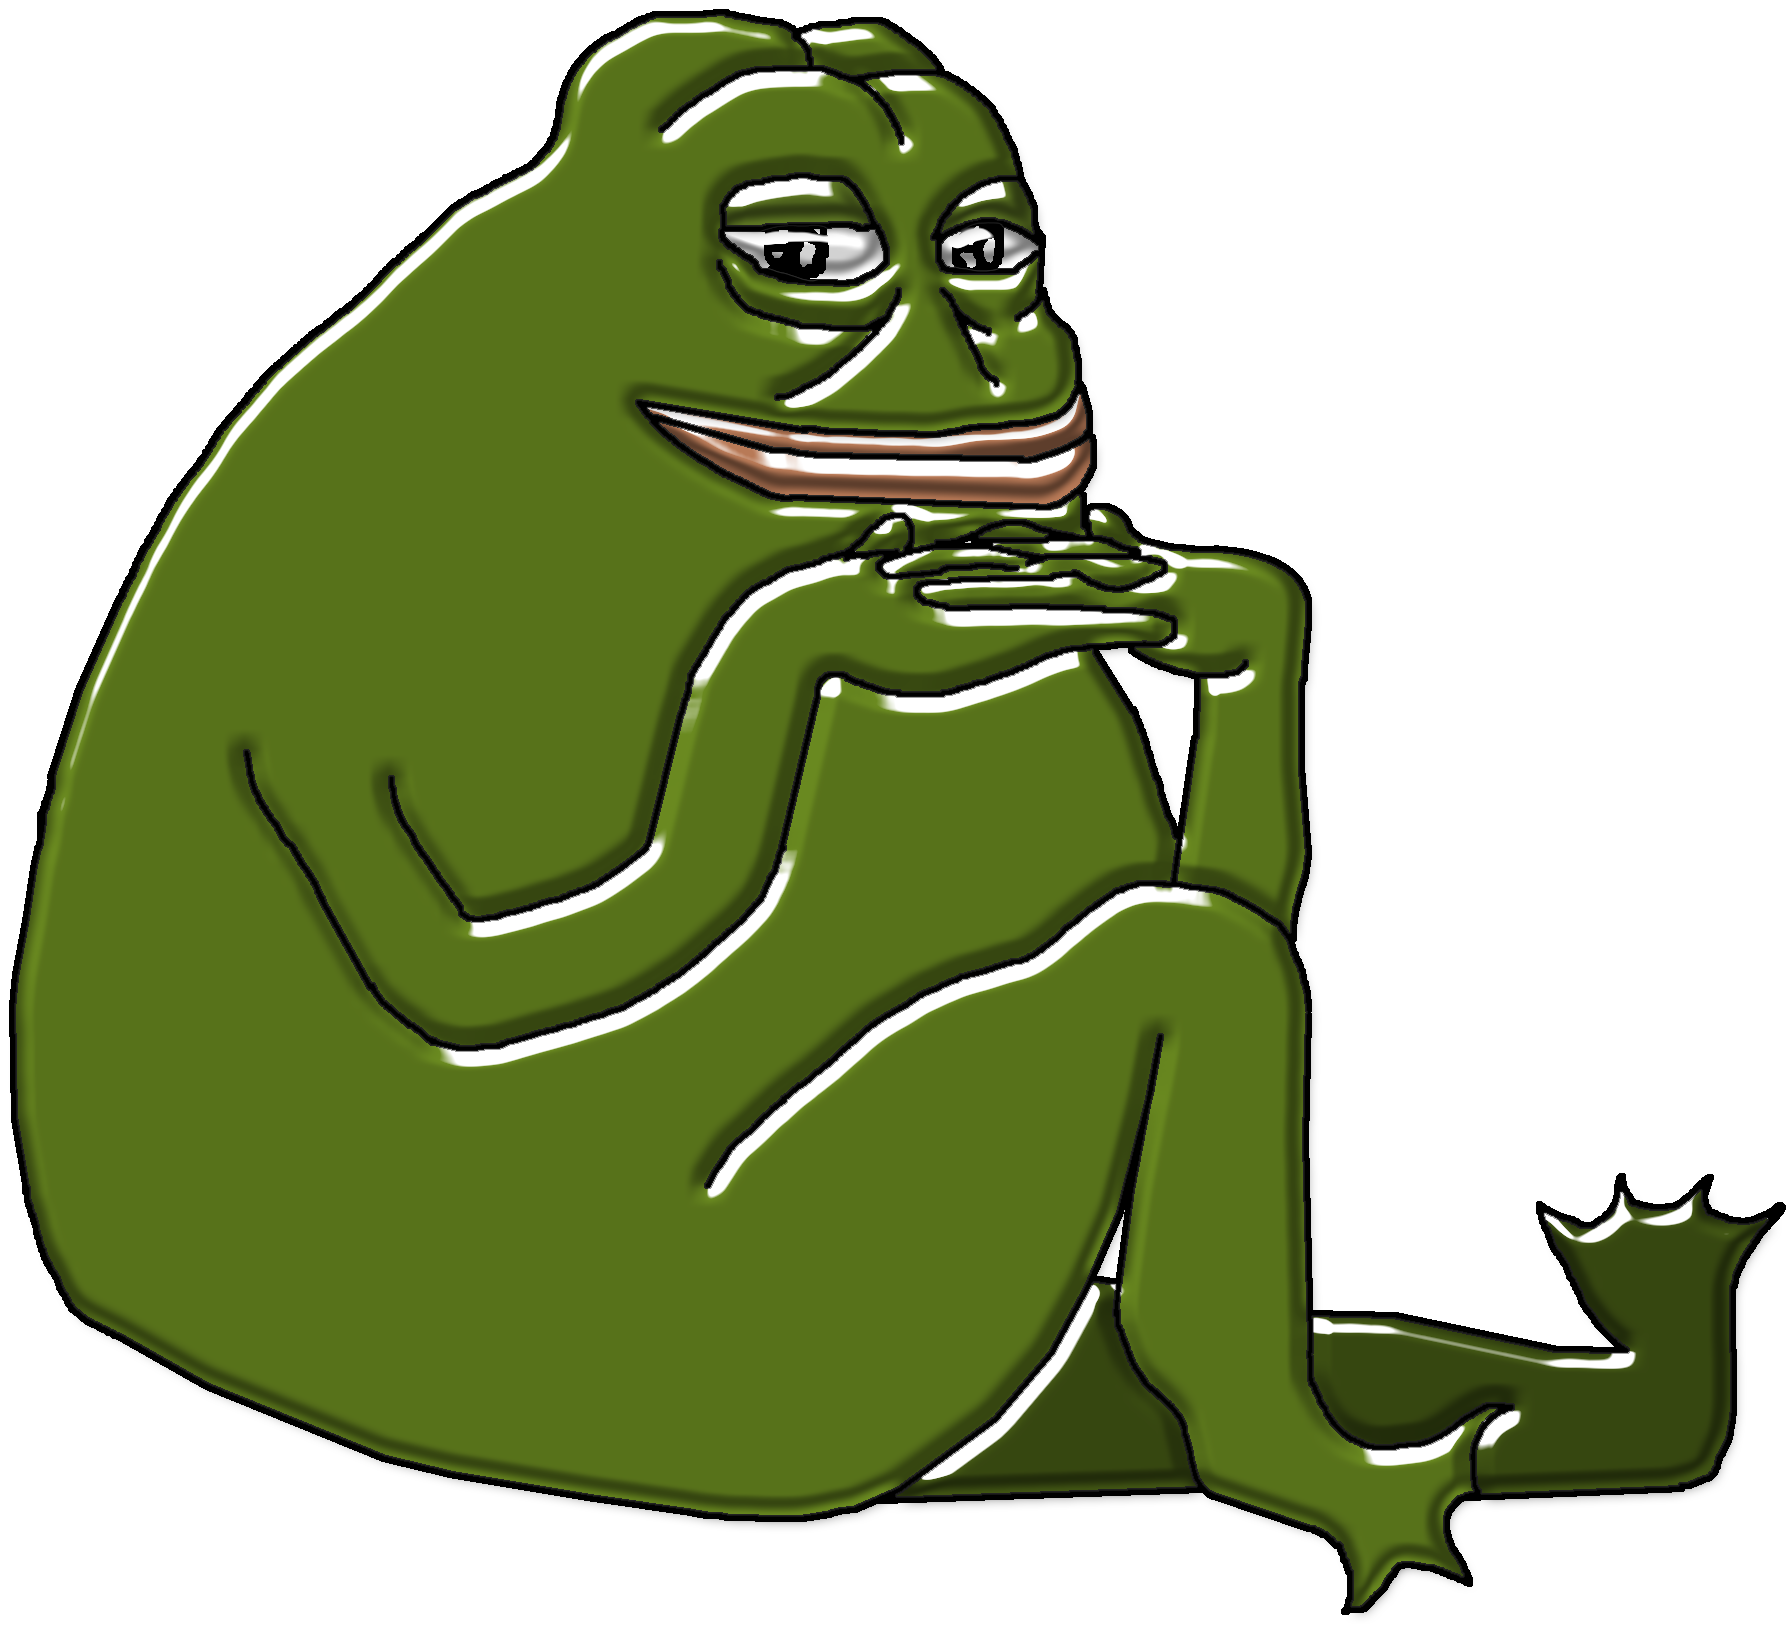 Toad clipart many frog. Hq pepe the know